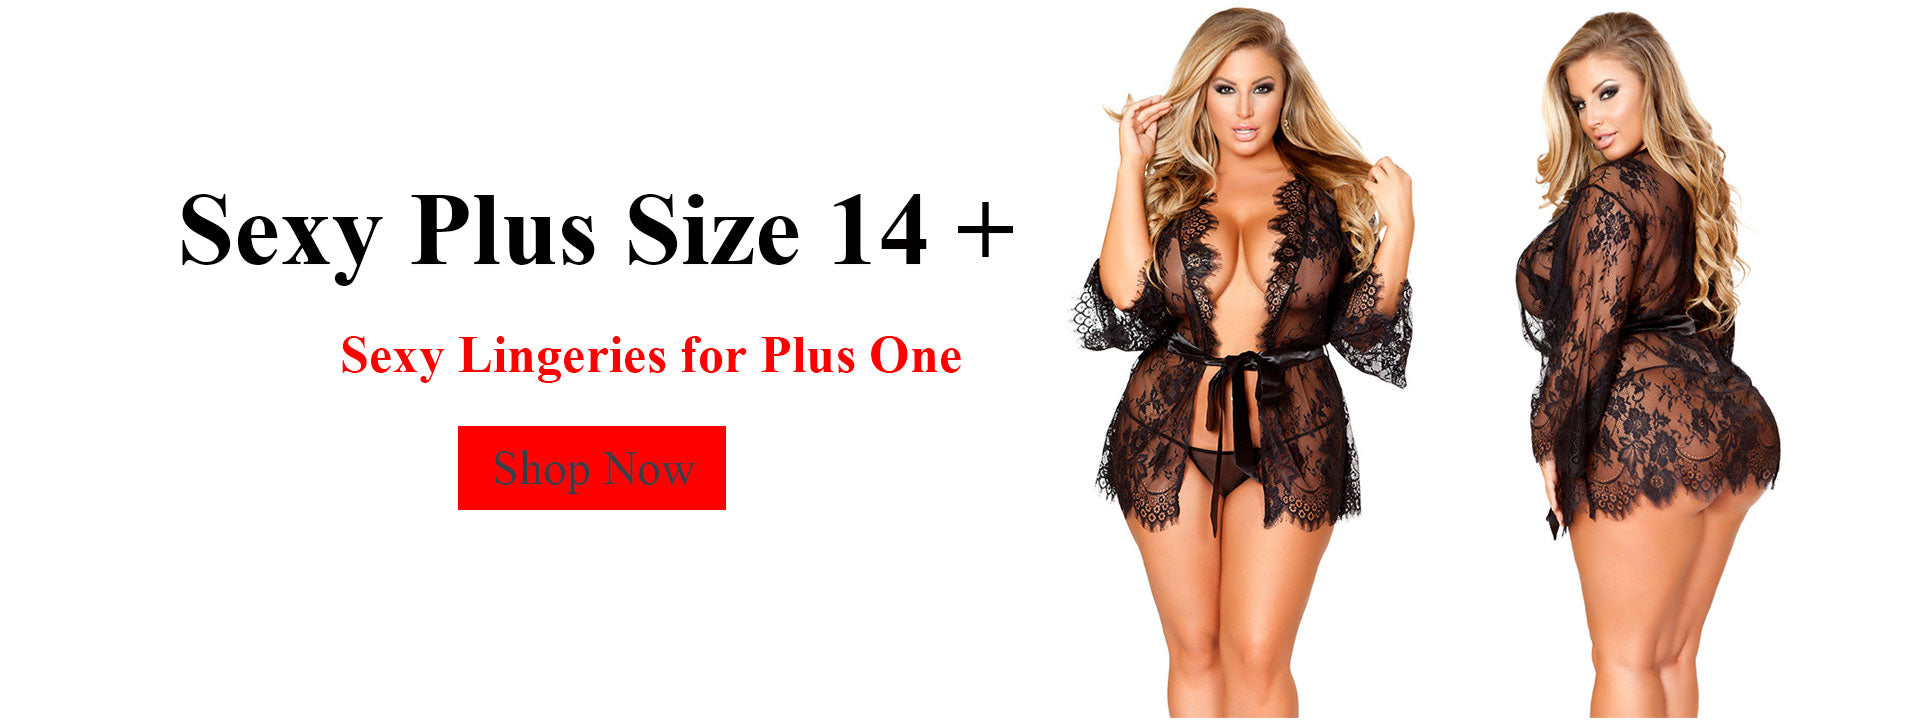 Sexy-Plus-Size-14-banner